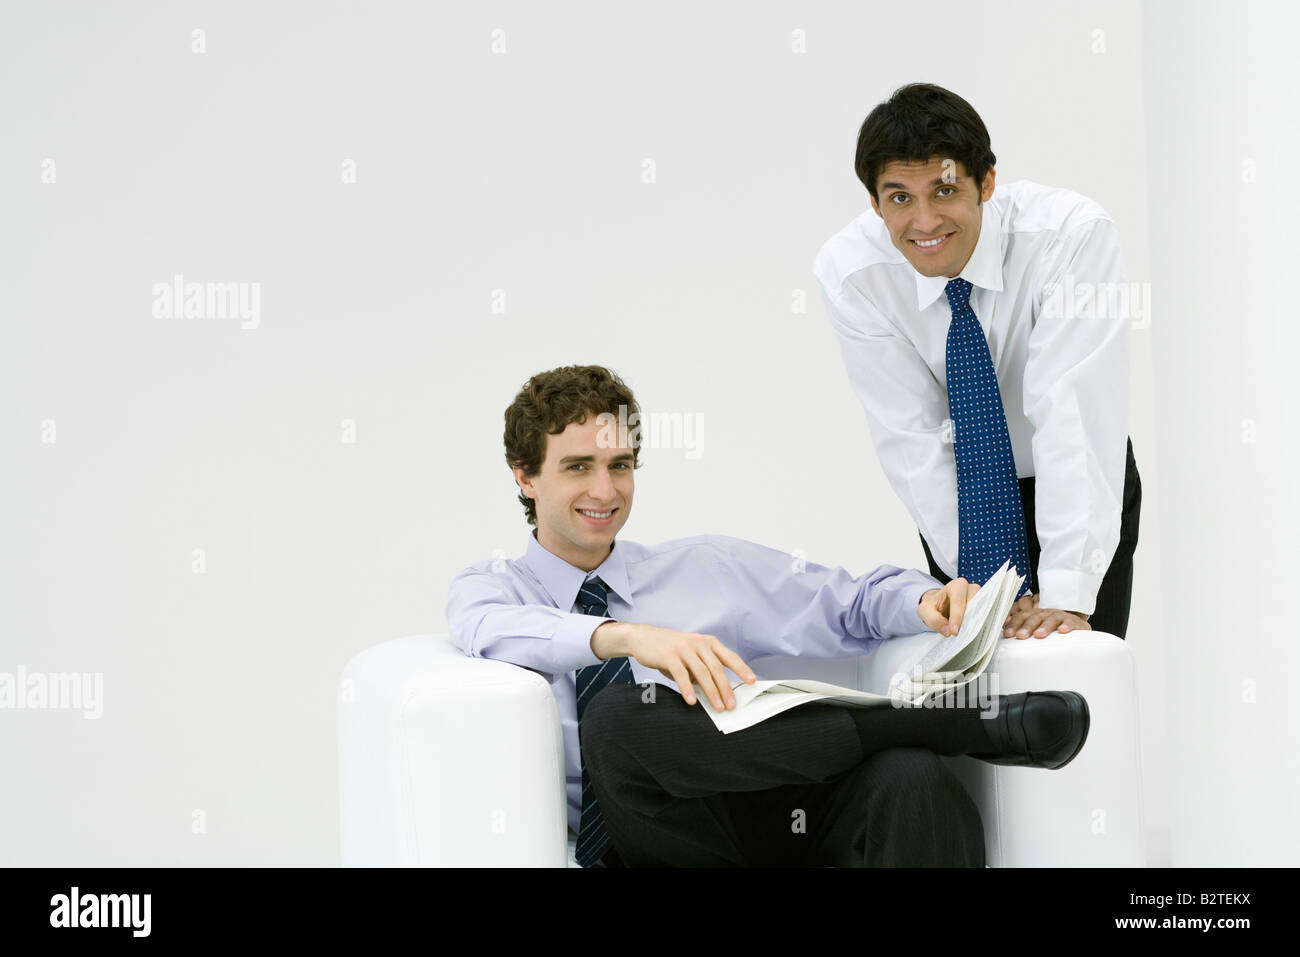 Professional man sitting, holding newspaper, colleague leaning over his shoulder, both smiling at camera - Stock Image